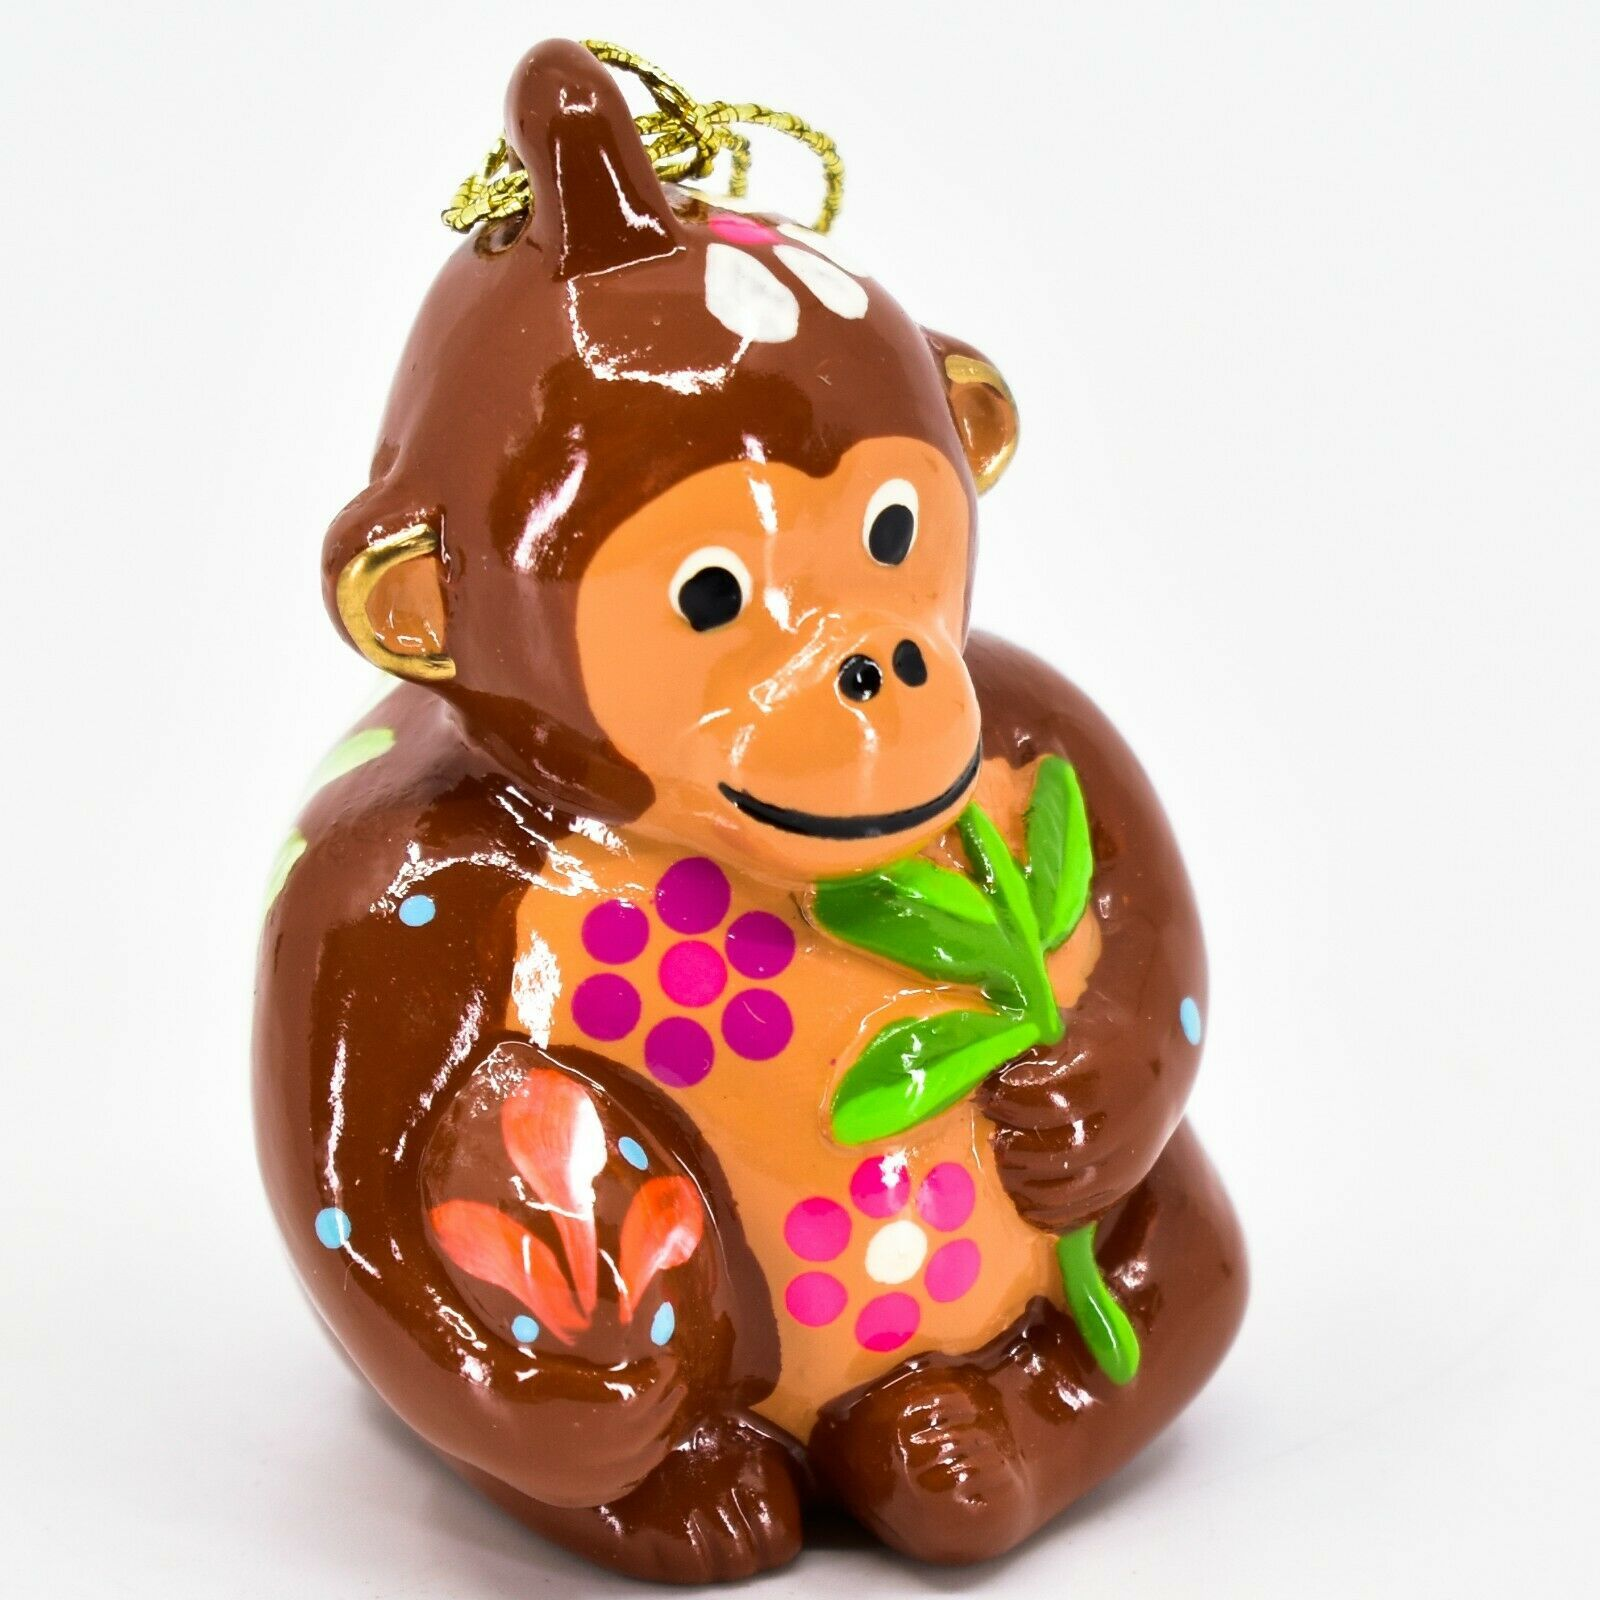 Handcrafted Painted Ceramic Brown Monkey Confetti Ornament Made in Peru